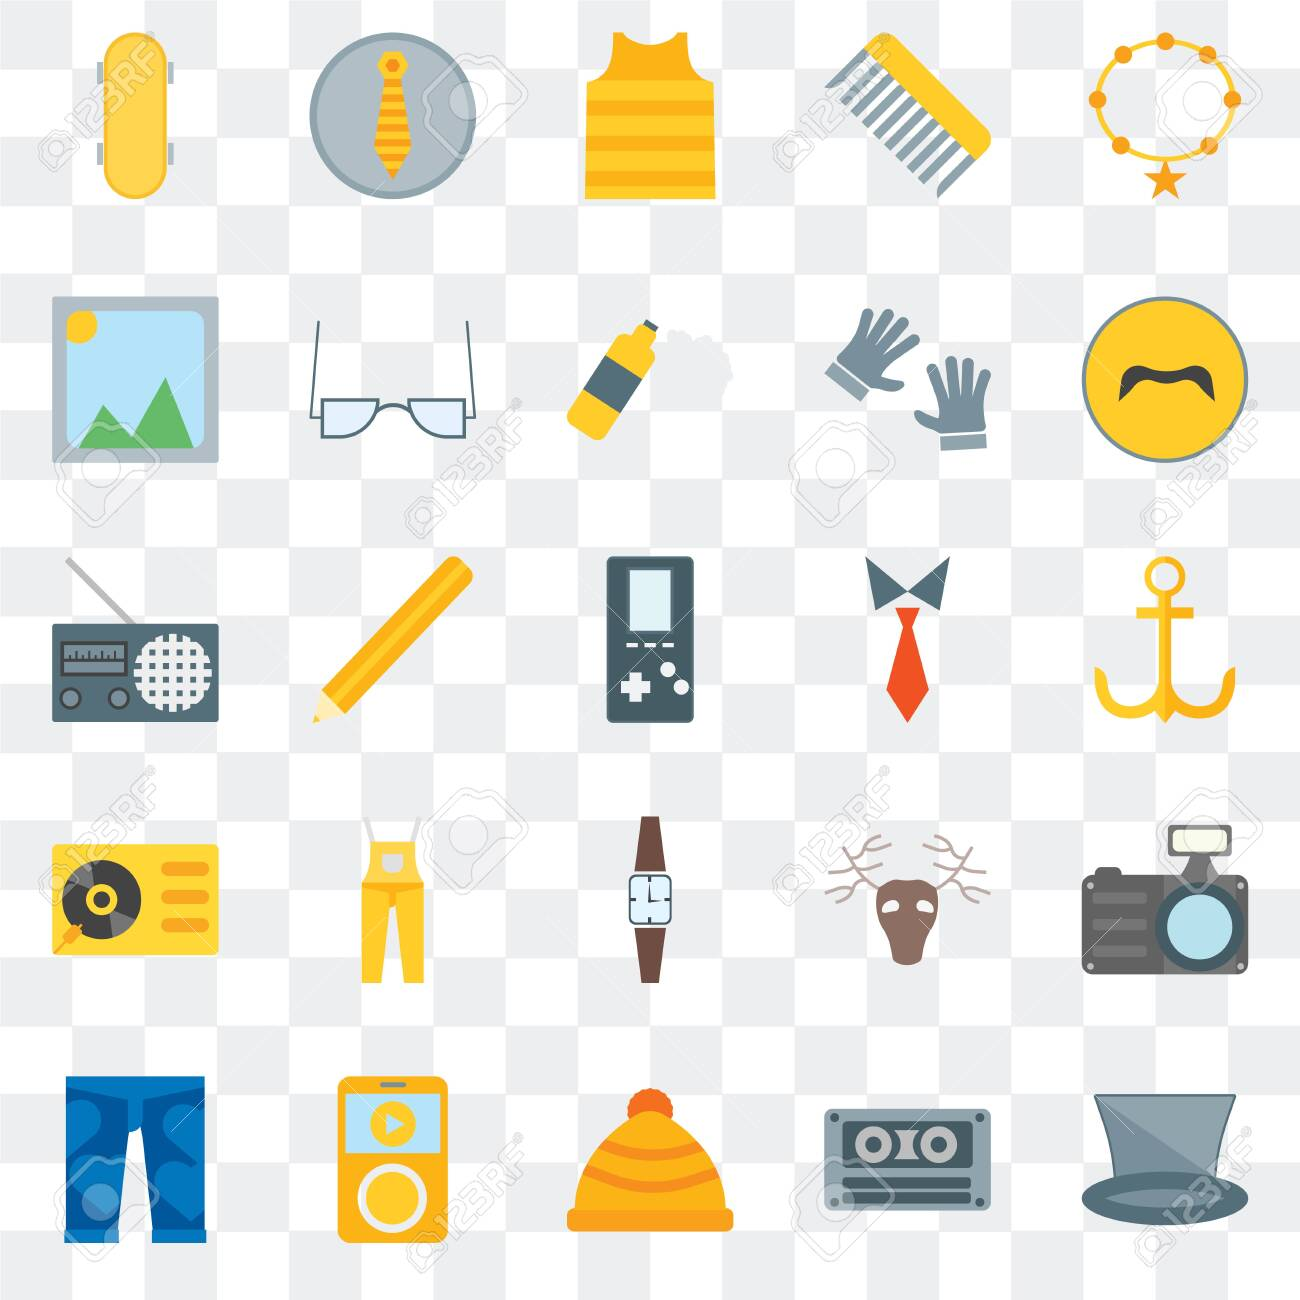 Set Of 25 transparent icons such as Accessory, Cassette, Winter hat, Clothing, Mustache, Tie, Wristwatch, Turntable, Picture, web UI transparency icon pack - 130332370